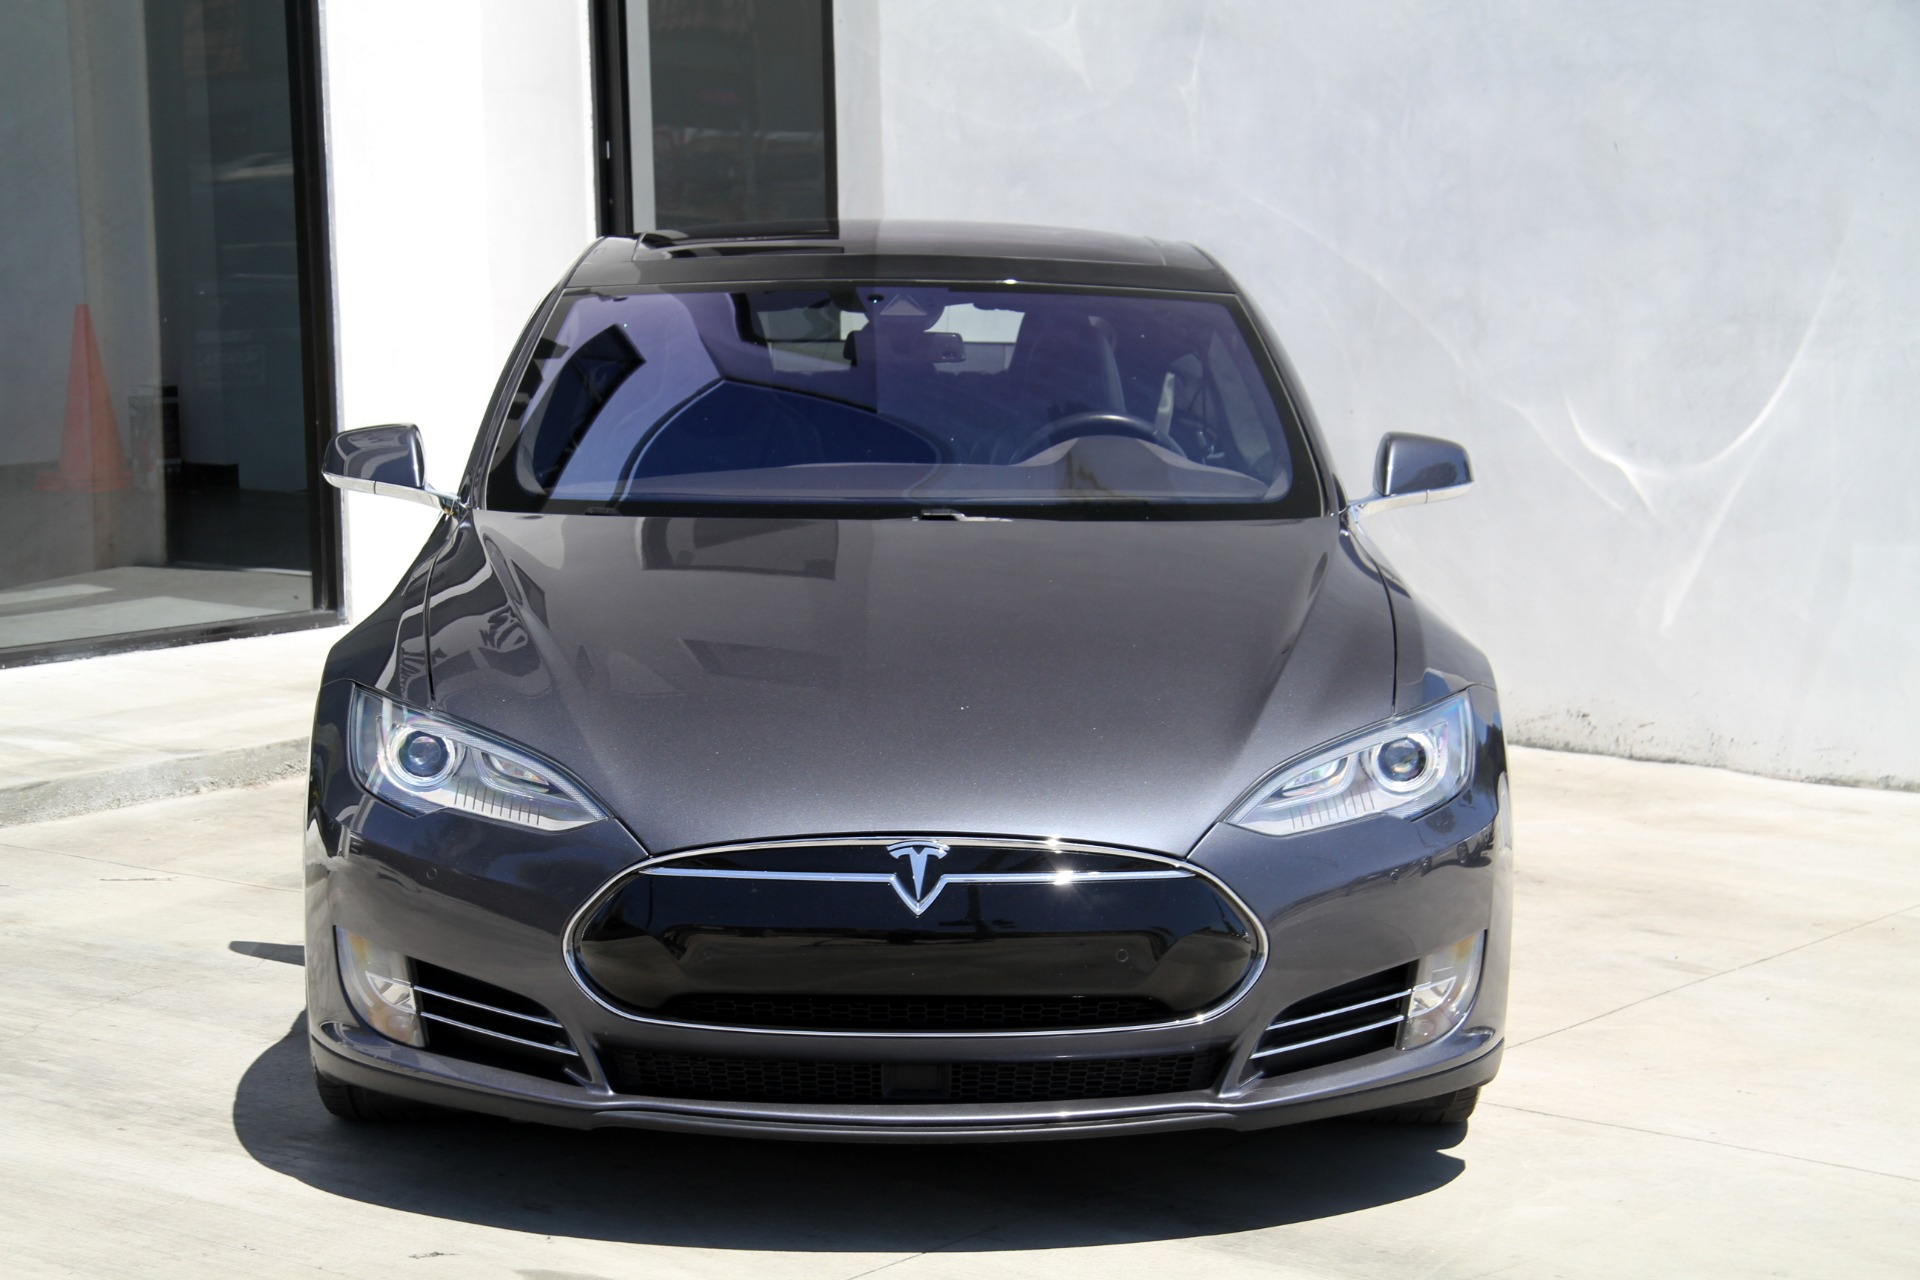 2015 tesla model s 90d autopilot stock 105345 for sale near redondo beach ca ca tesla. Black Bedroom Furniture Sets. Home Design Ideas